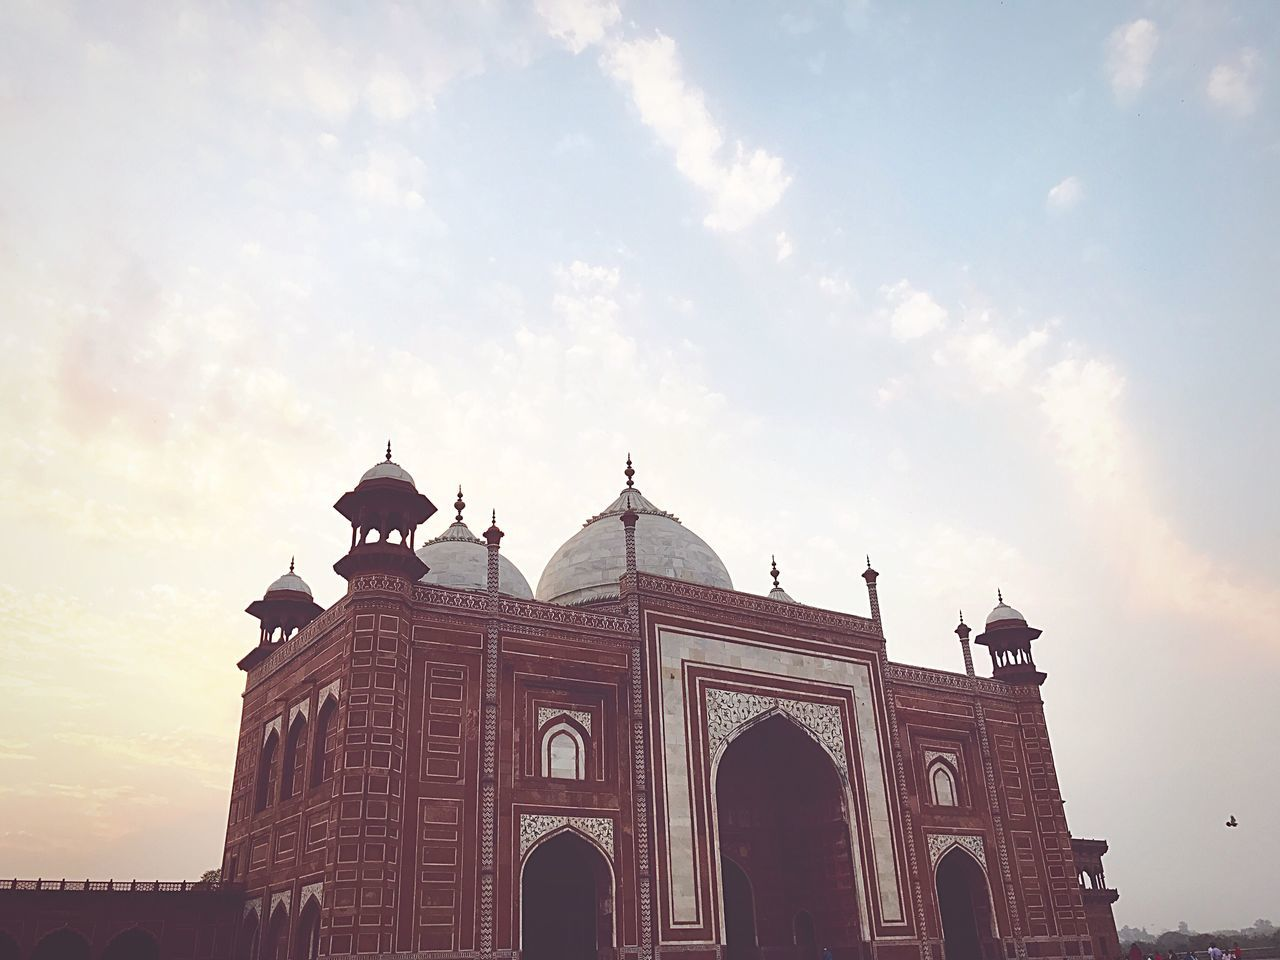 Architecture City Cloud - Sky Sky Built Structure Outdoors City Place Of Worship No People Love History Tajmahal Beauty Architecture Building Exterior Low Angle View Dome Sunlight Day Arch